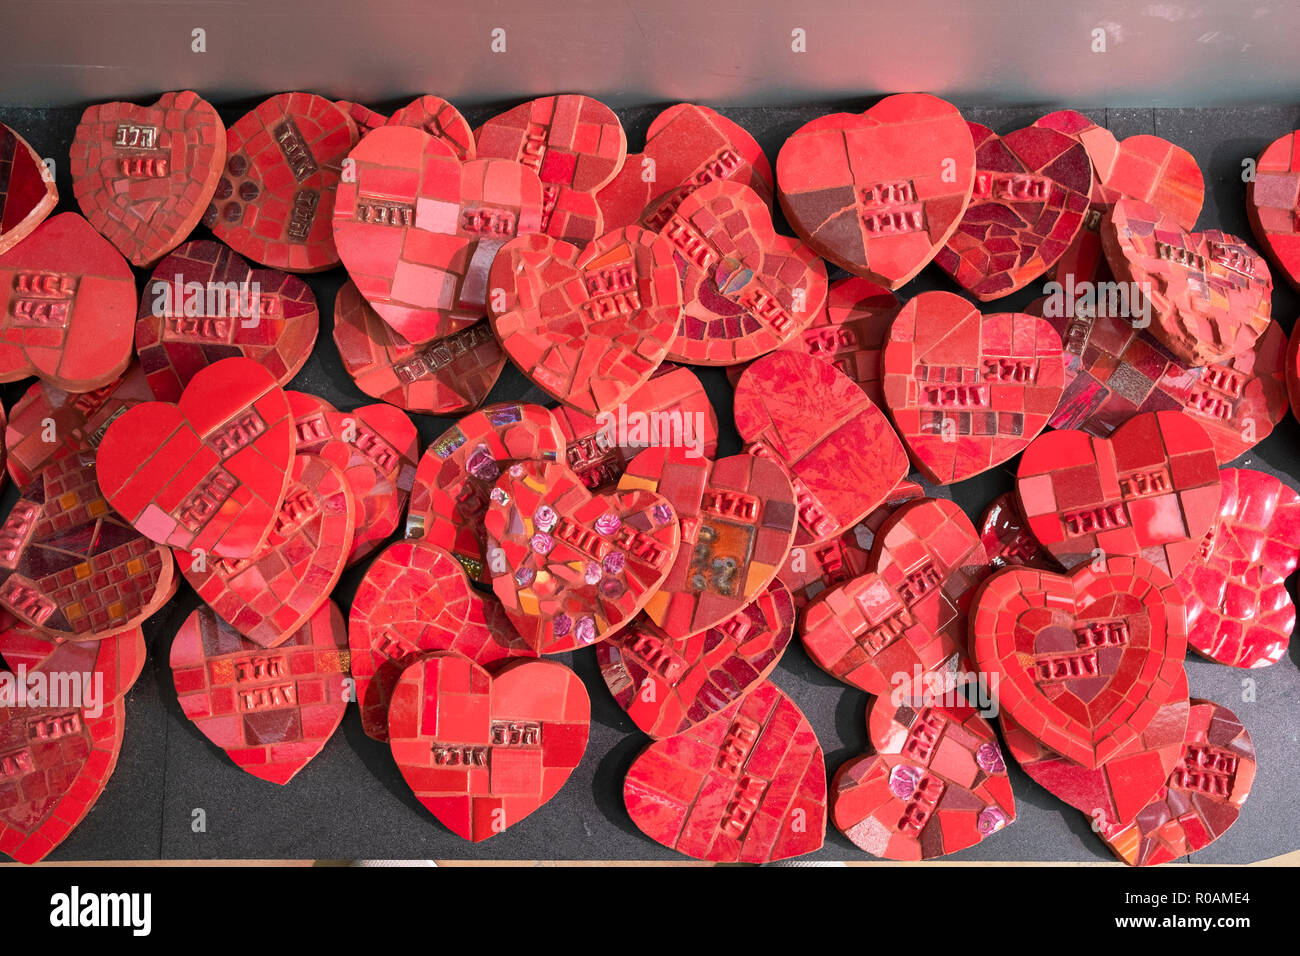 Some of the 27,000 ceramic hearts on display at the Rabin Center to commemorate Israelis killed in wars and terrorist attacks. In Tel Aviv, Israel - Stock Image